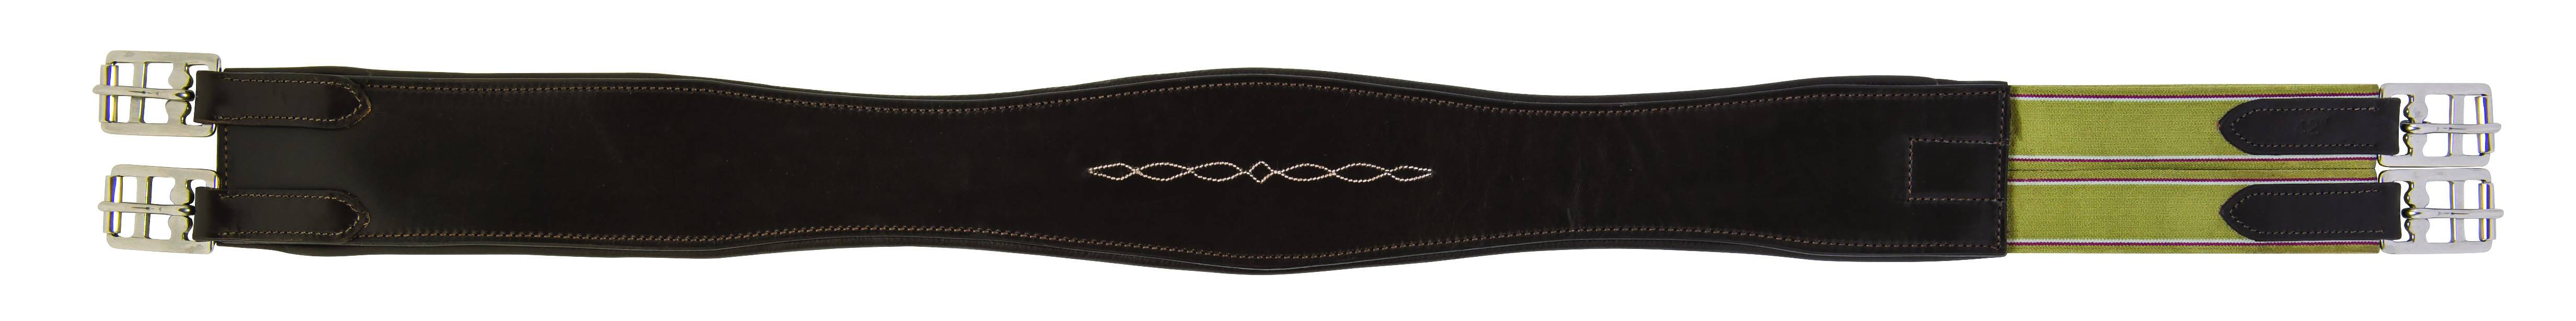 Weaver English Padded Leather Girth